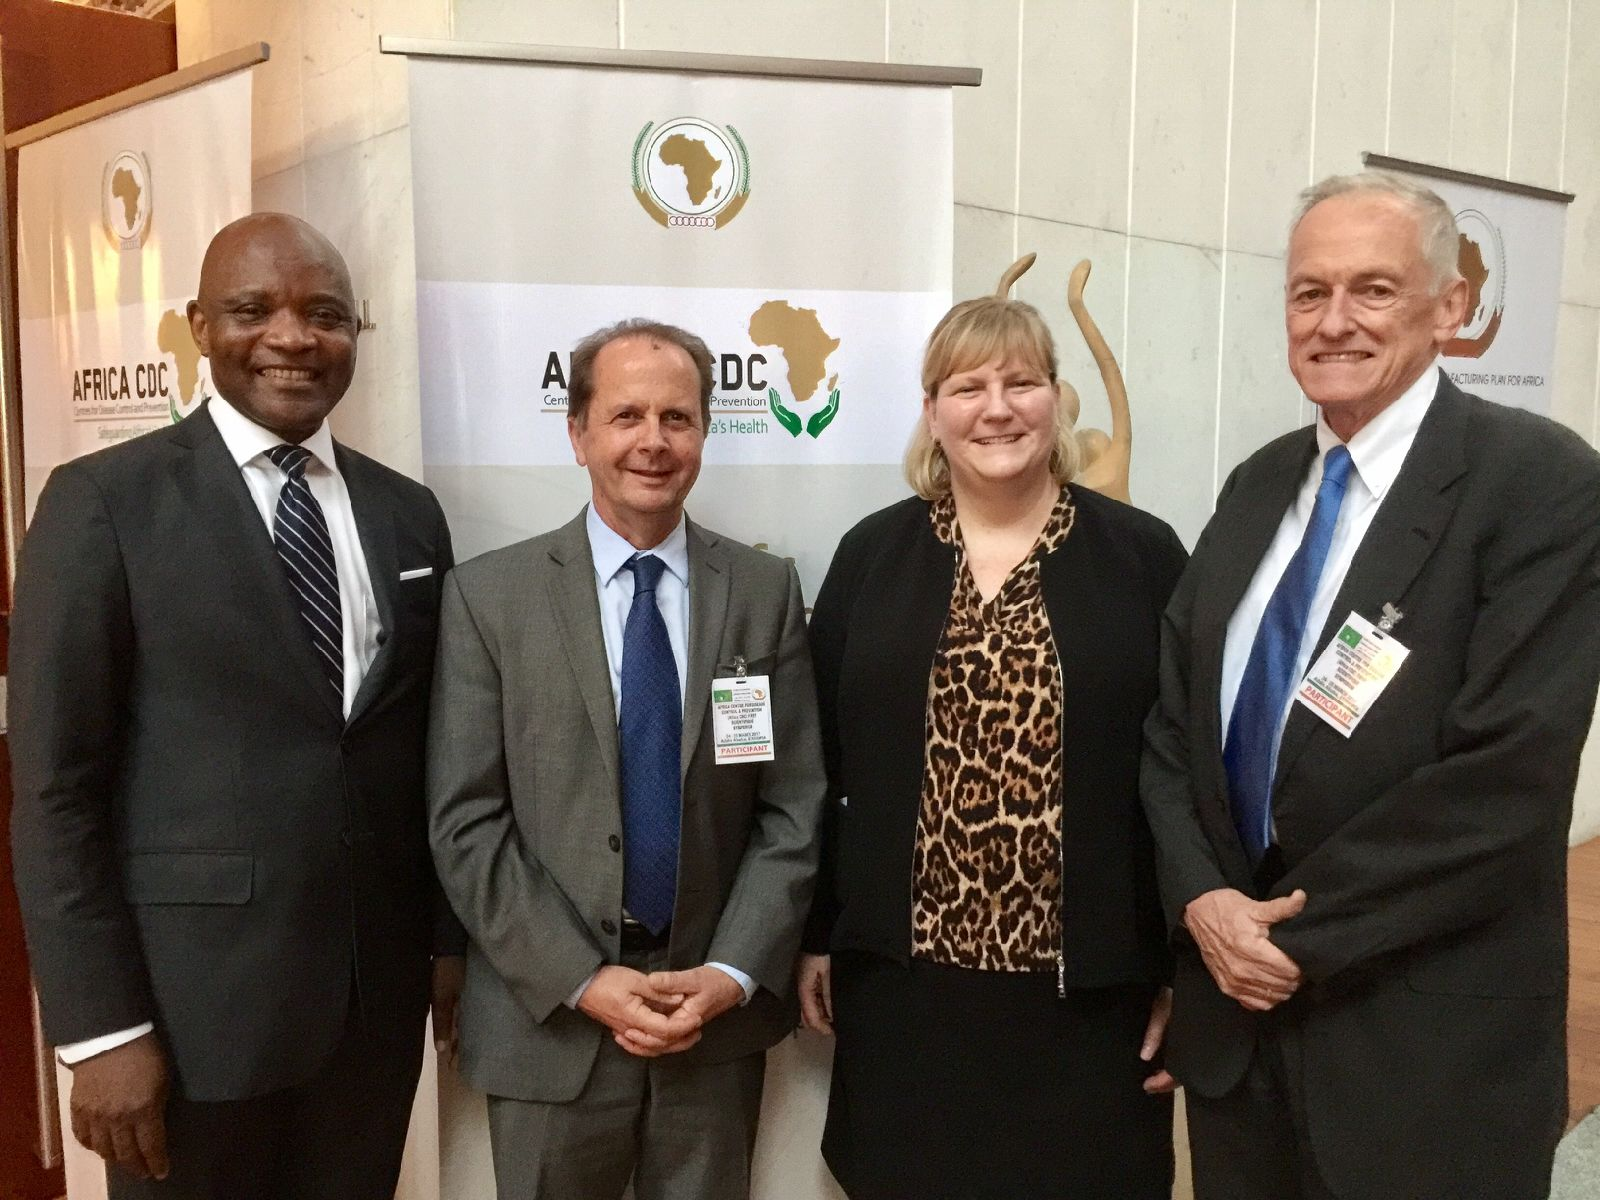 (From left to right) First Africa CDC Director, John Nkengasong, former CGH Director, Tom Kenyon, CGH Director,  Rebecca Martin, and former CGH Director, Kevin de Cock.